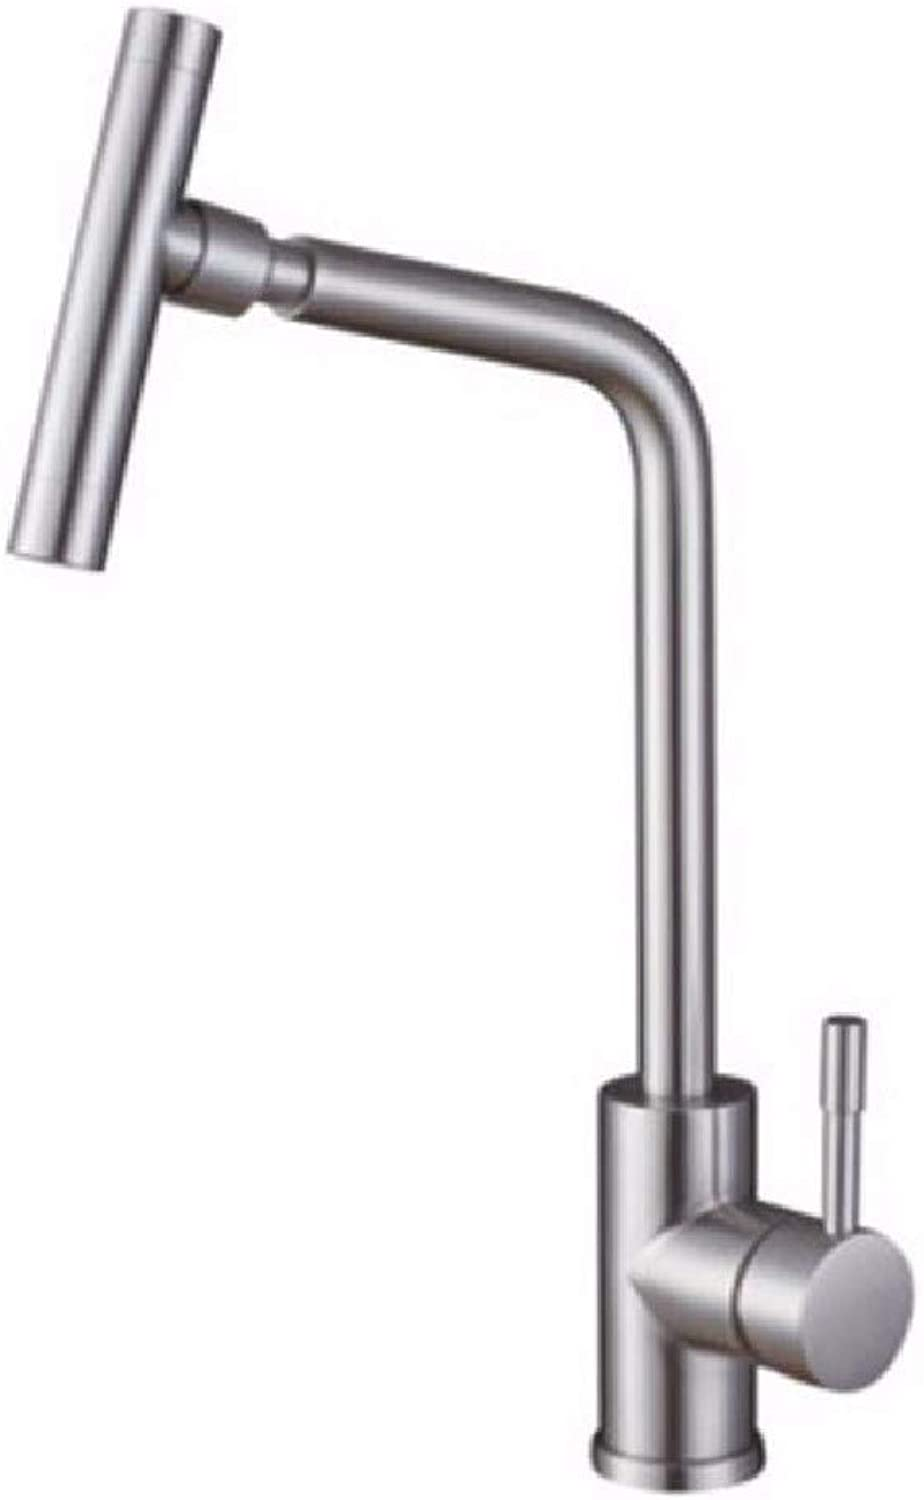 ZPSPZ kitchen mixer tap 304 Stainless Steel Sink, Faucet Kitchen Washing Basin, Hot And Cold Water Faucets Can Be redated.